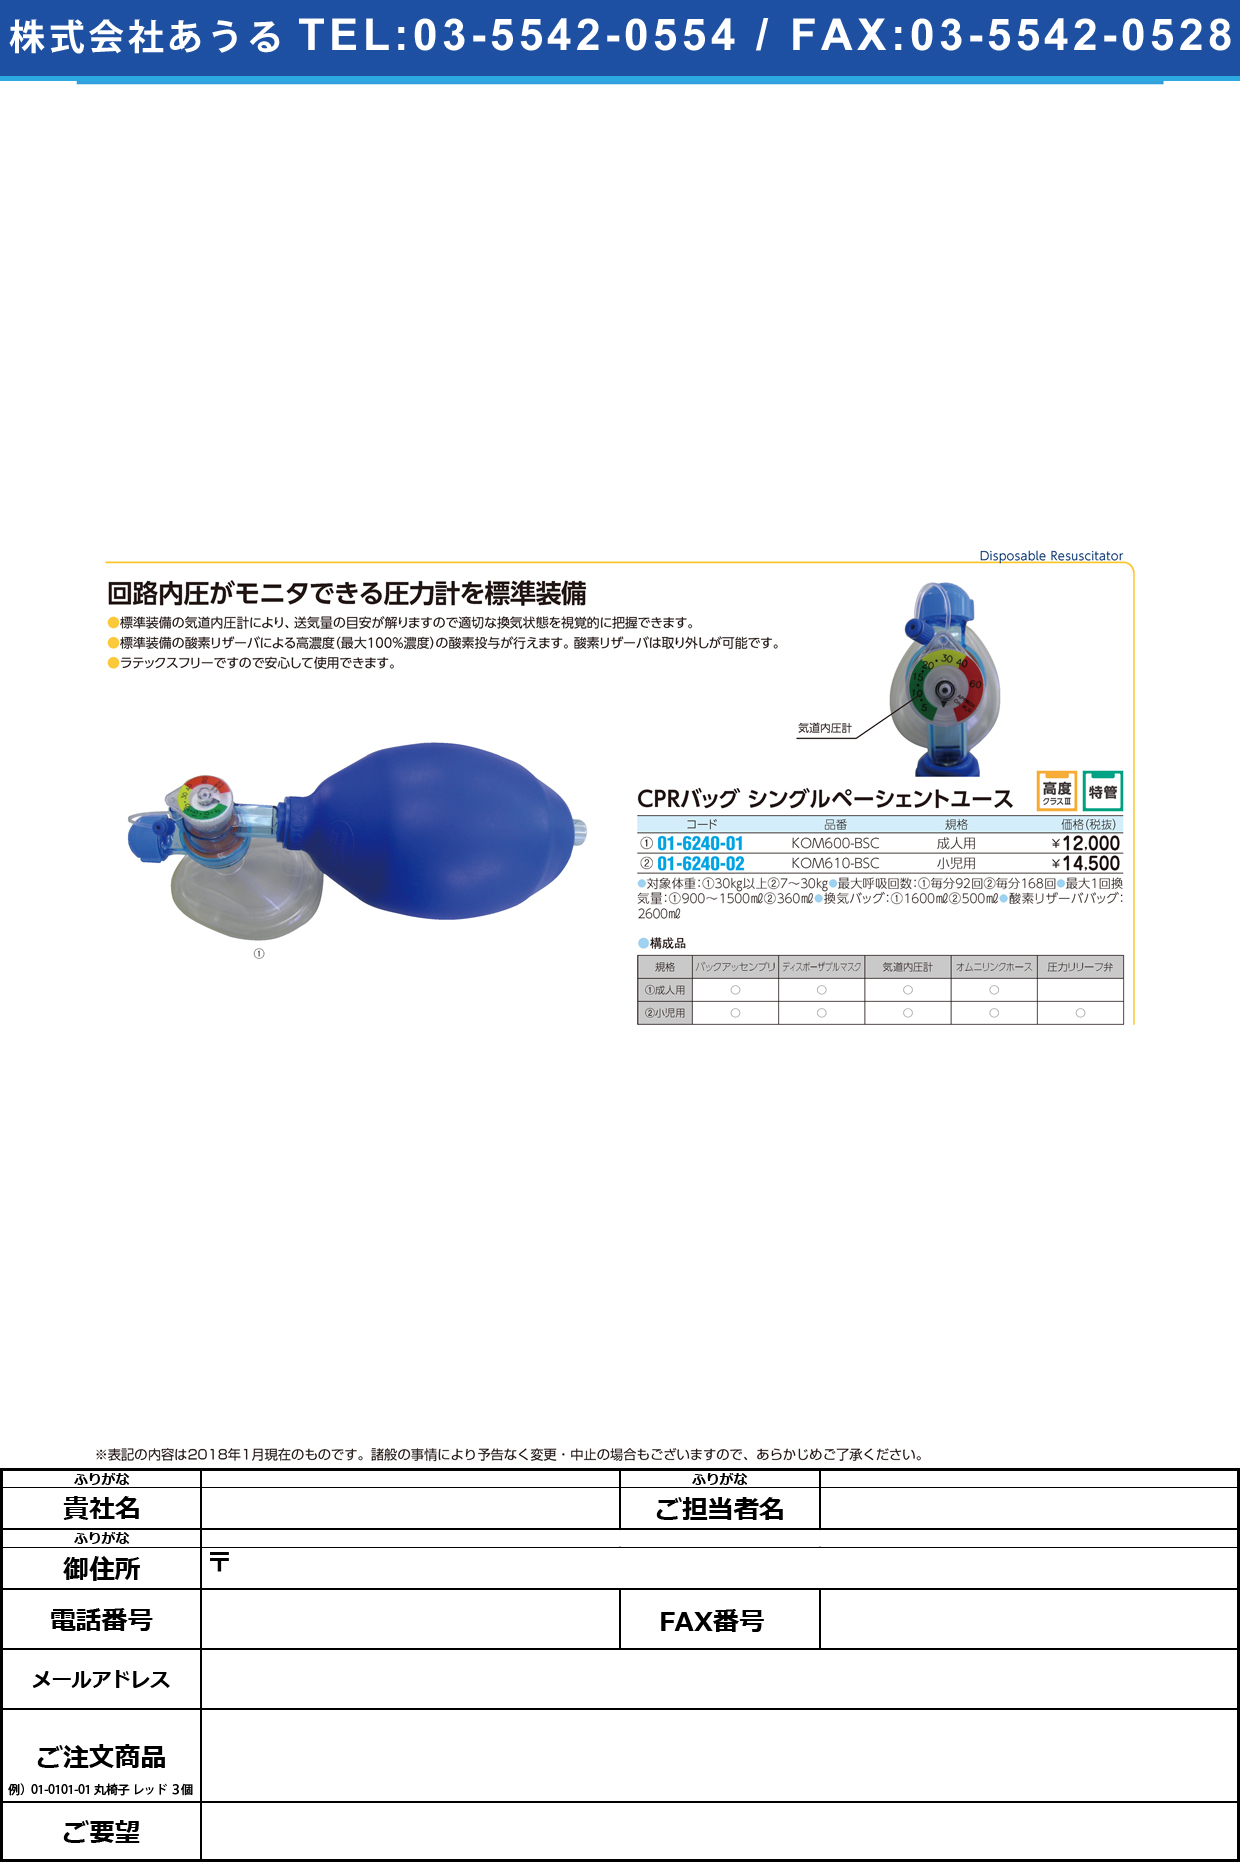 (01-6240-01)CPRバッグ(成人用セット) KOM600-BSC CPRバッグ(セイジンヨウセット【1式単位】【2019年カタログ商品】